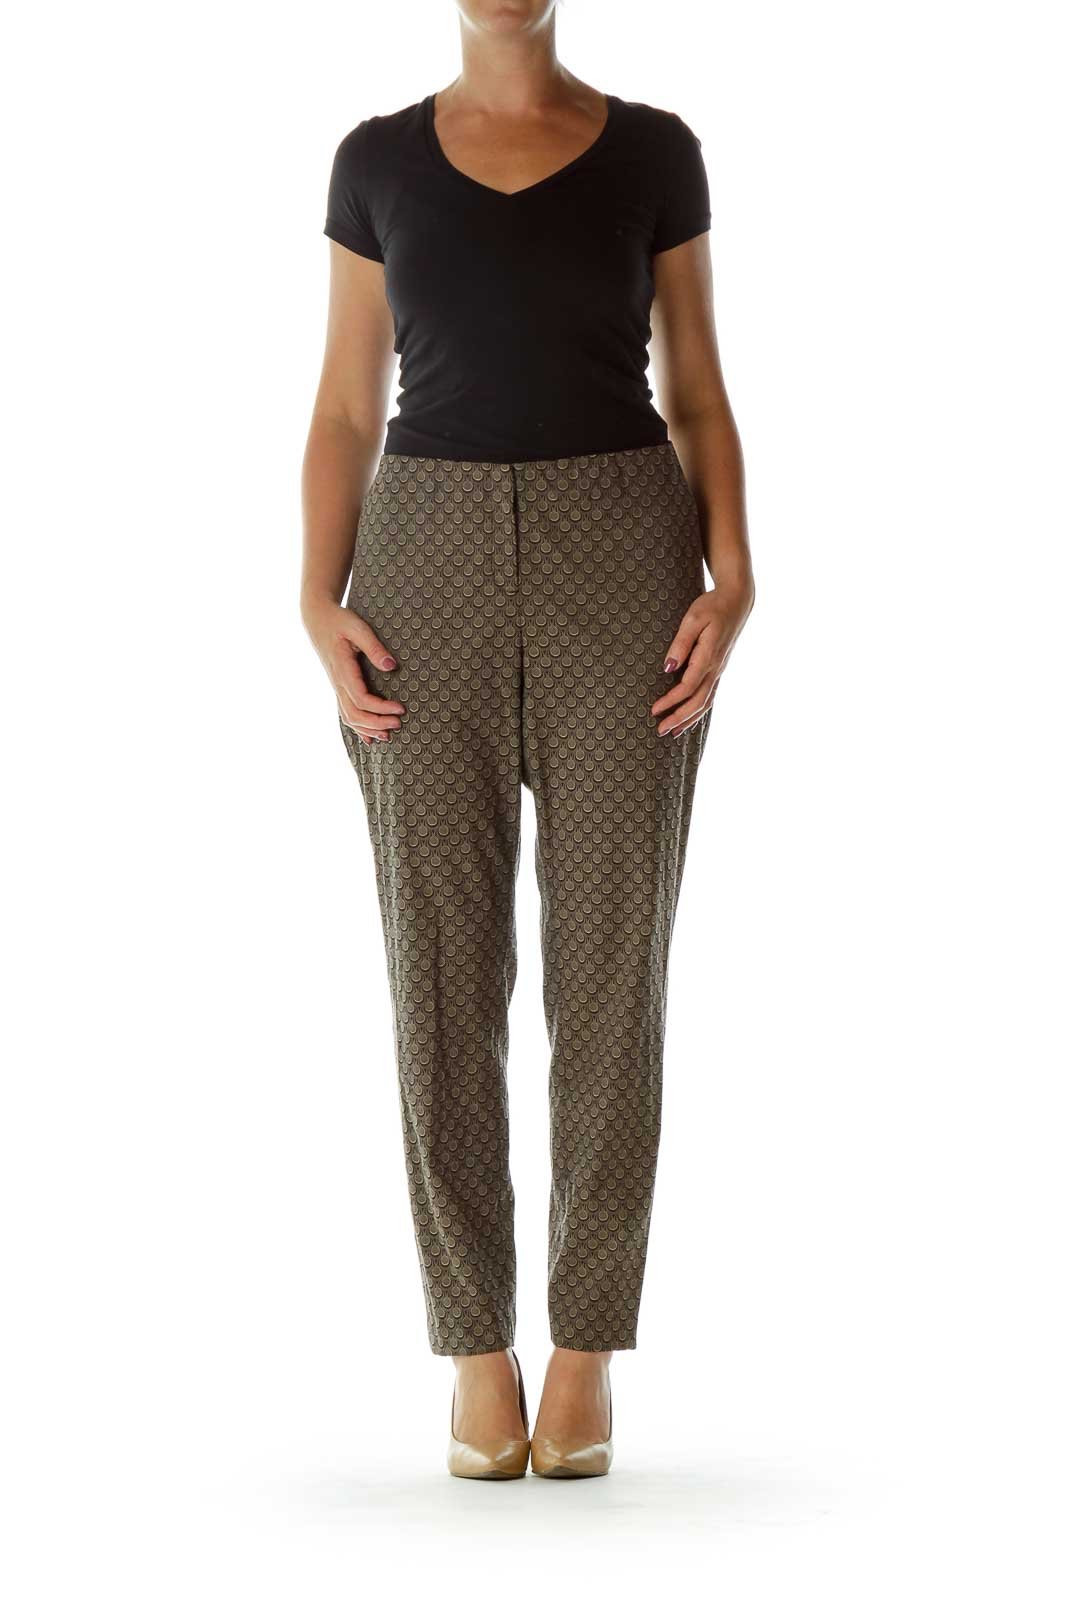 Black Beige Print Slacks